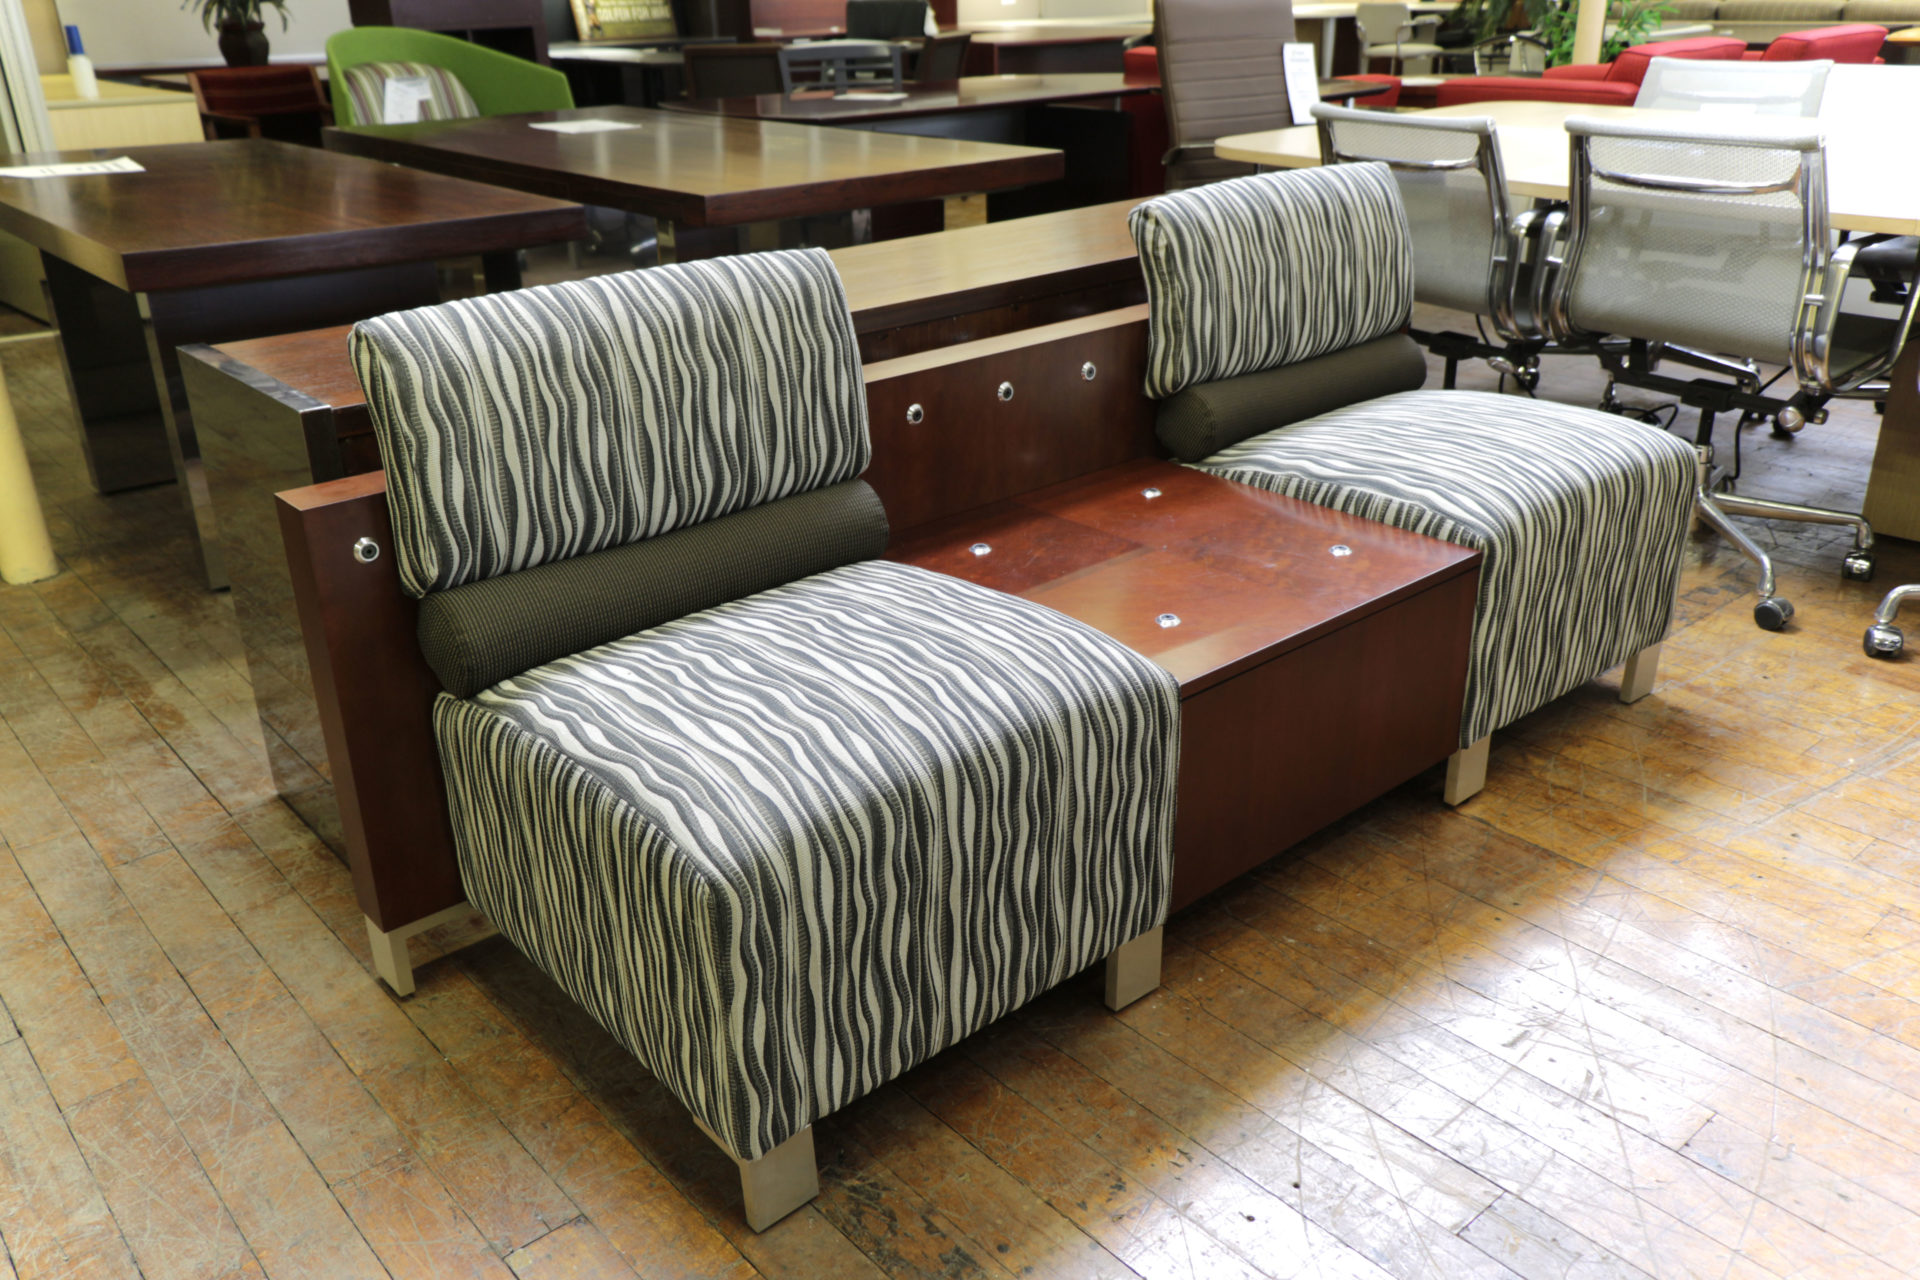 Kimball Delano 2-Seat Club with Connecting Table